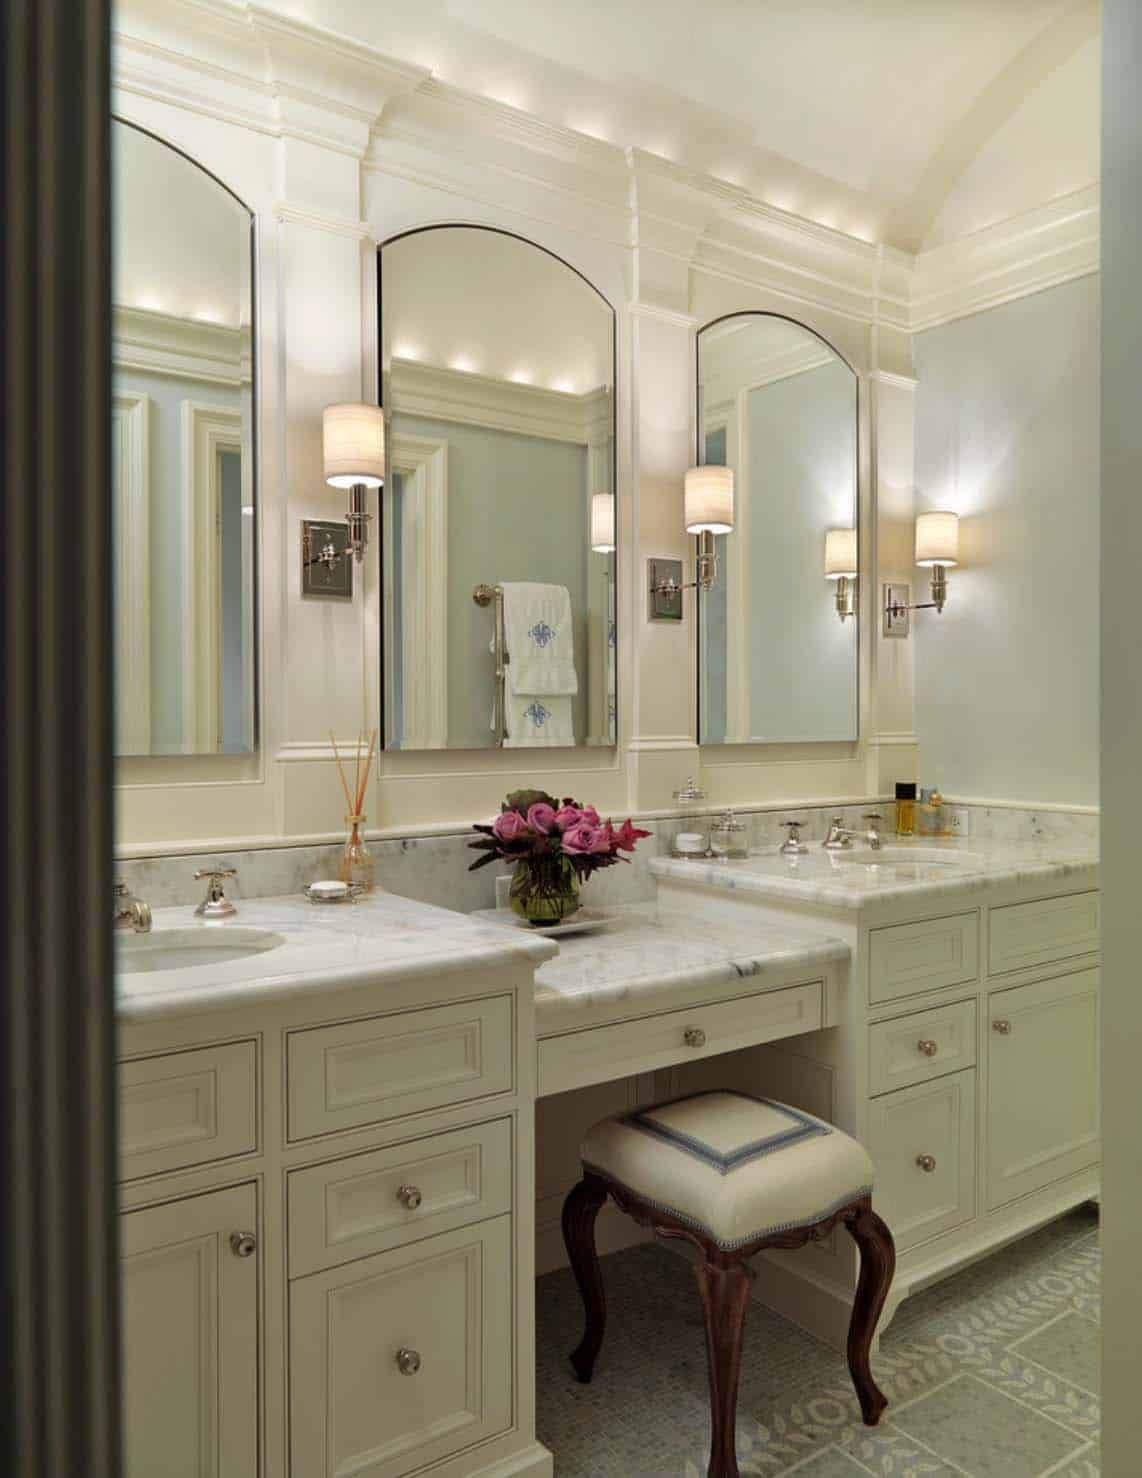 Pin By Olivia Minai On Home Renovating Tips Traditional Bathroom